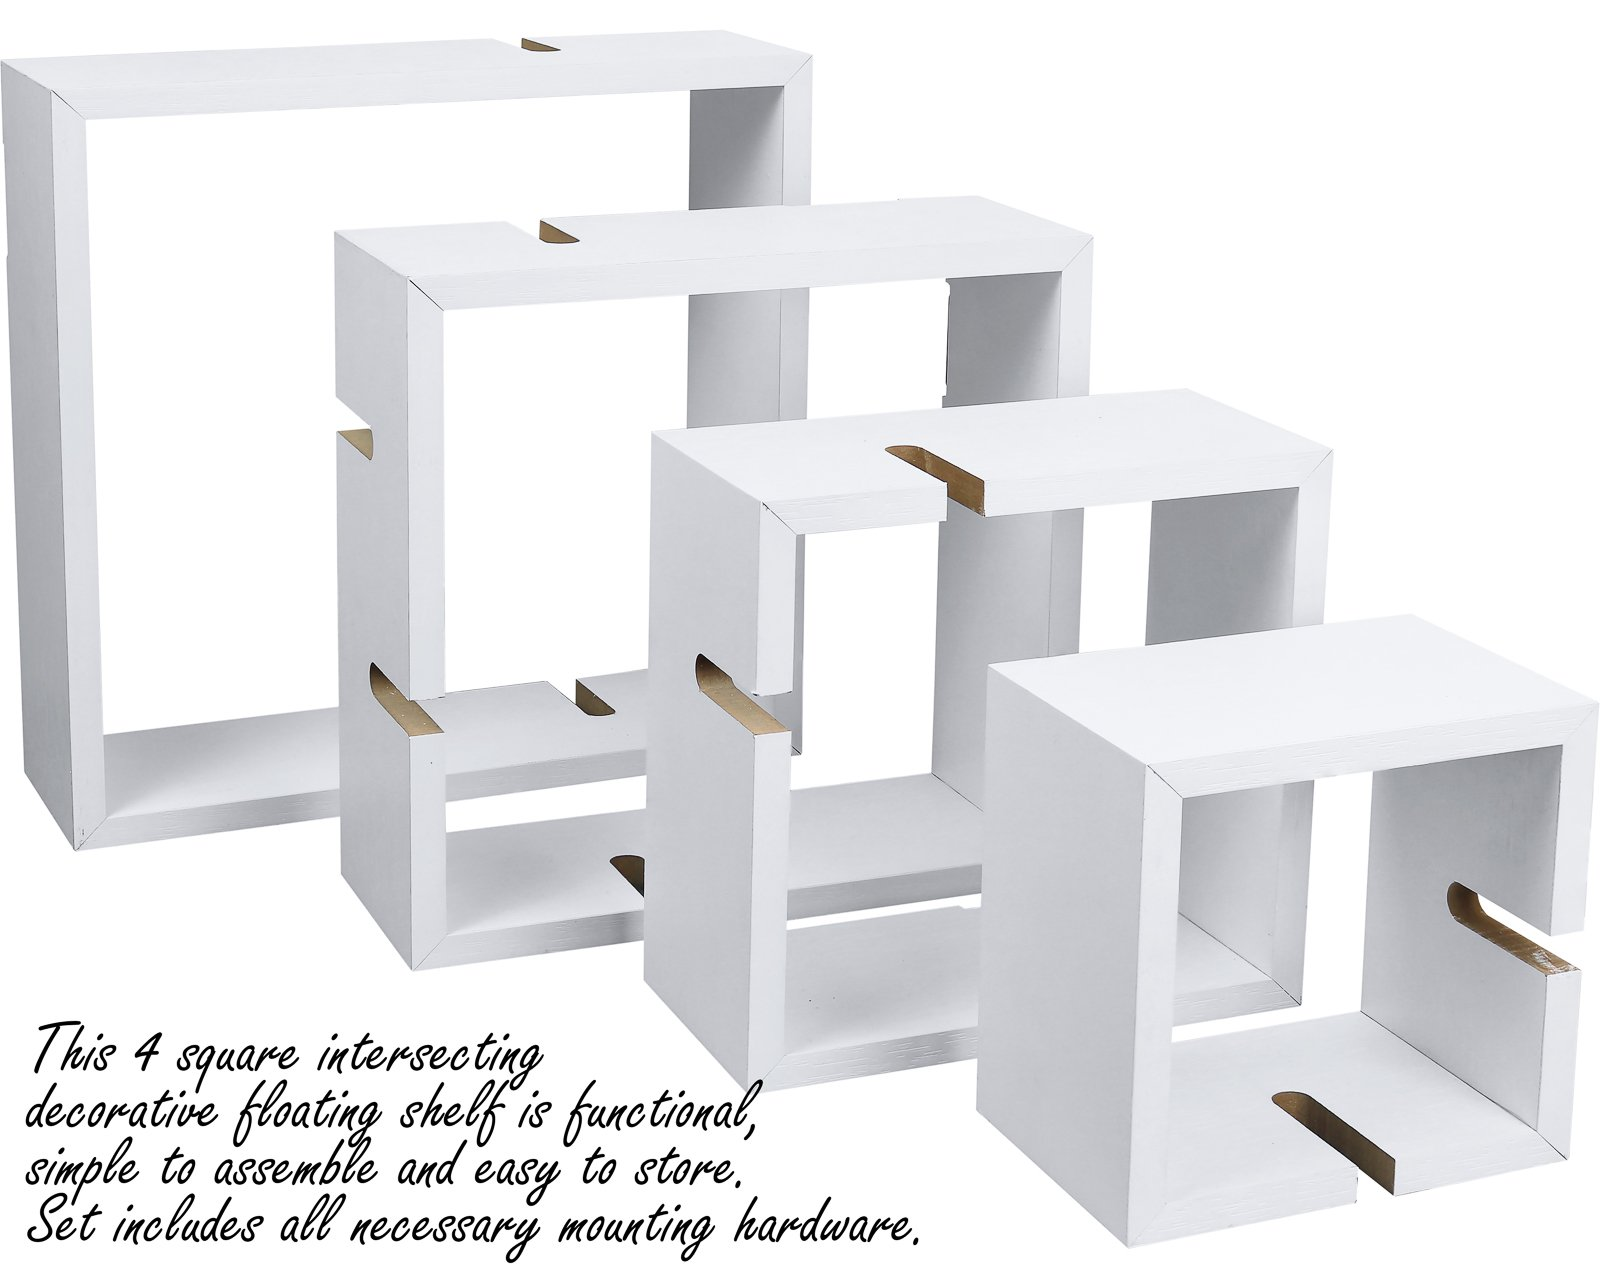 Greenco Decorative 4 Cube Intersecting Wall Mounted Floating Shelves- White Finish - Decorative intersecting floating shelves Made of durable MDF laminate. Beautiful White finish that suits almost any decor. Easy to mount with all necessary hardware Included. Hardware is not visable when mounted - wall-shelves, living-room-furniture, living-room - 71rqpQZVhzL -